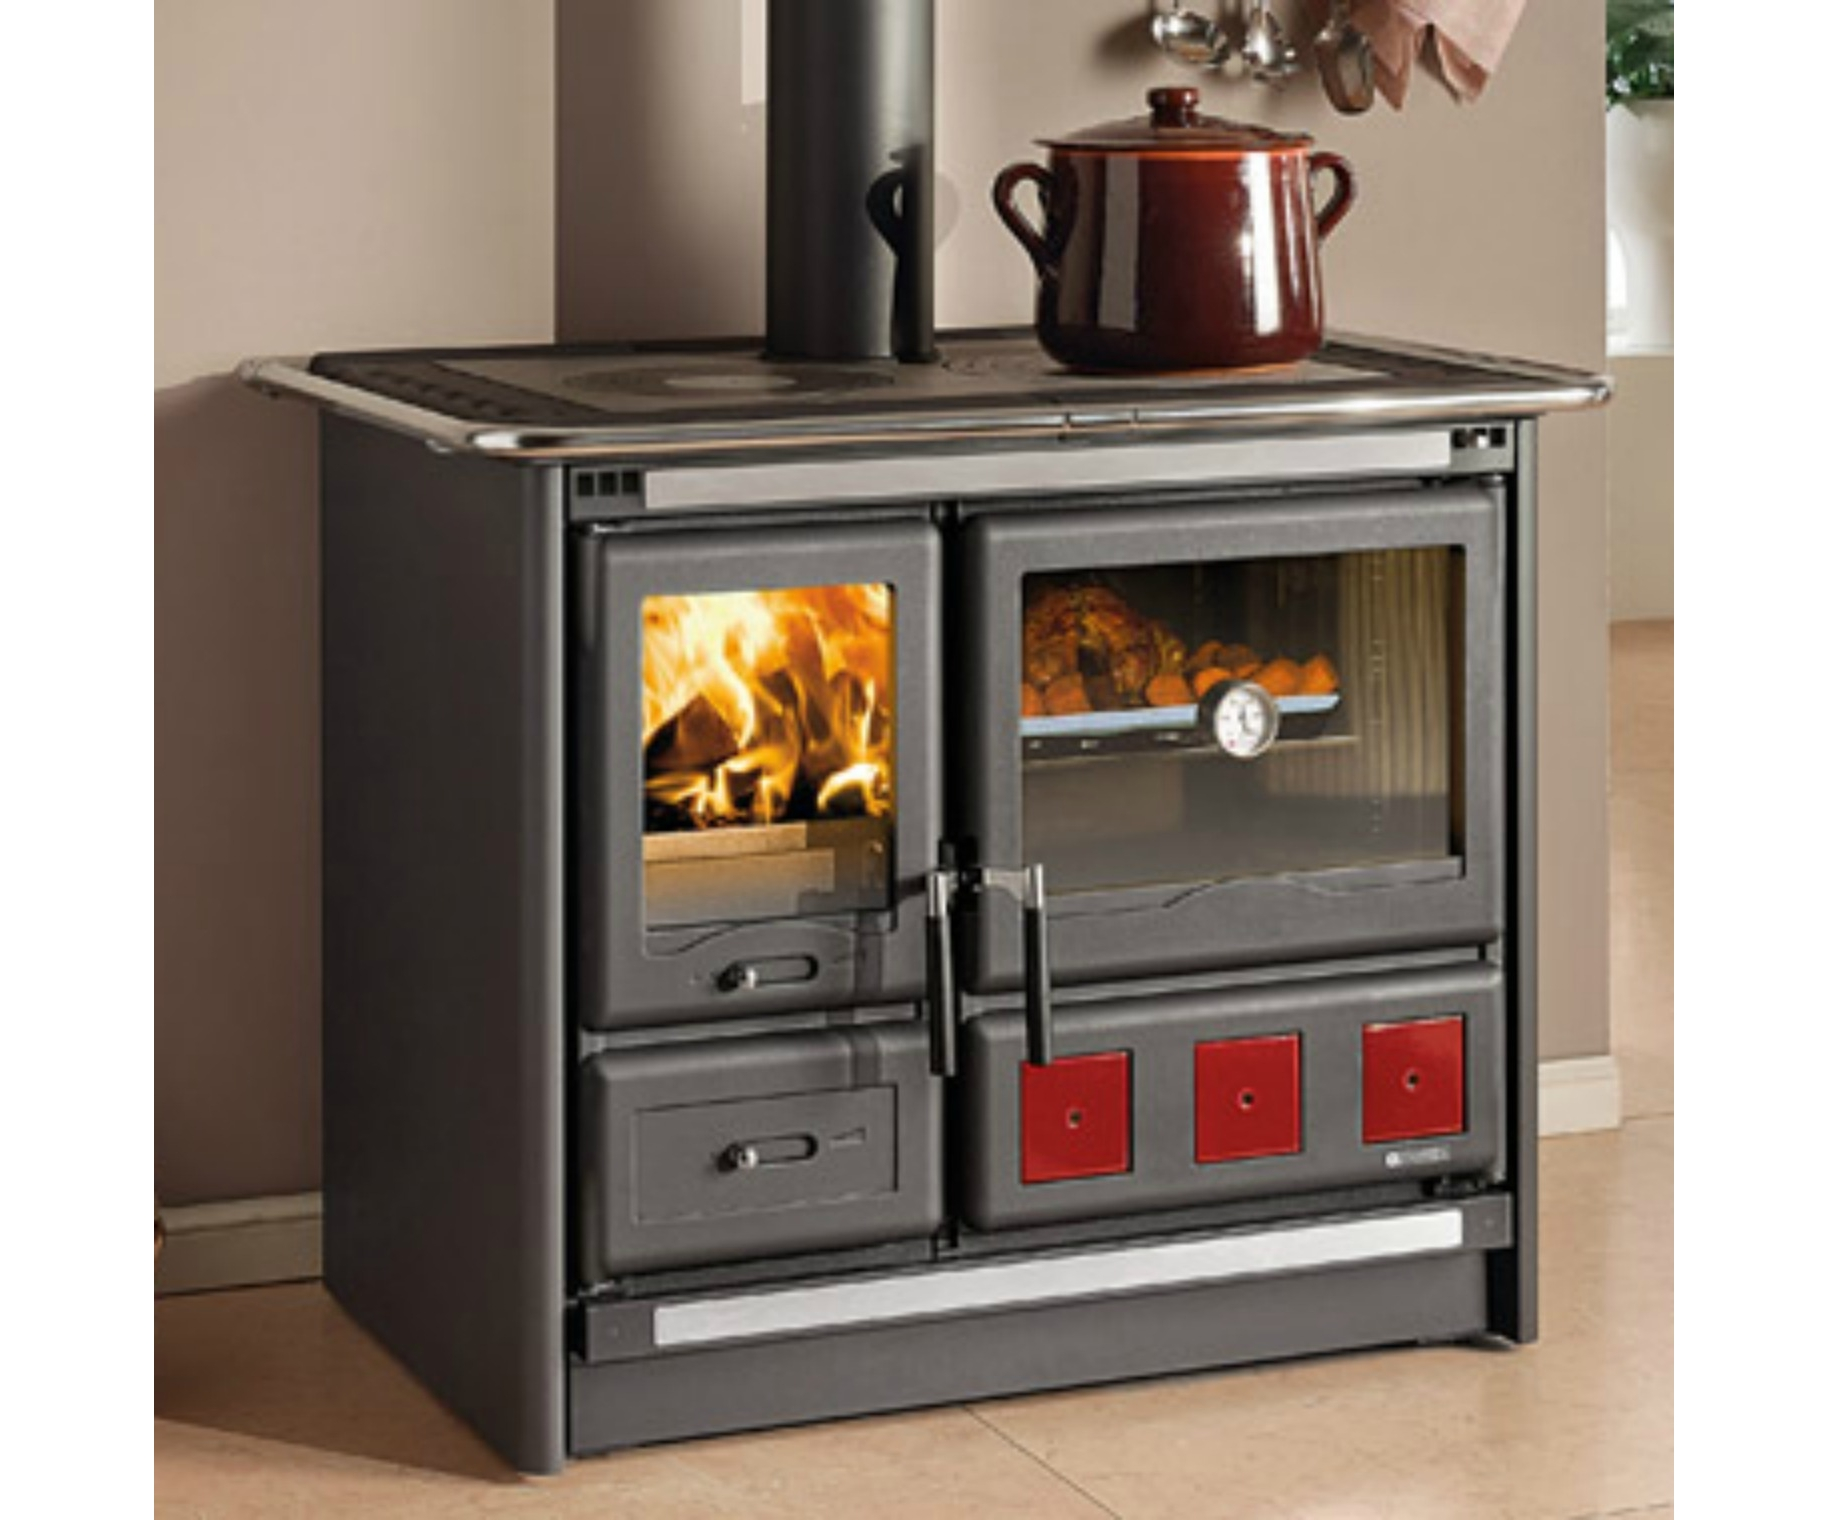 Cucina A Legna Rosa Xxl La Nordica Rosa Xxl Wood Burning Cooker At Stove Sellers